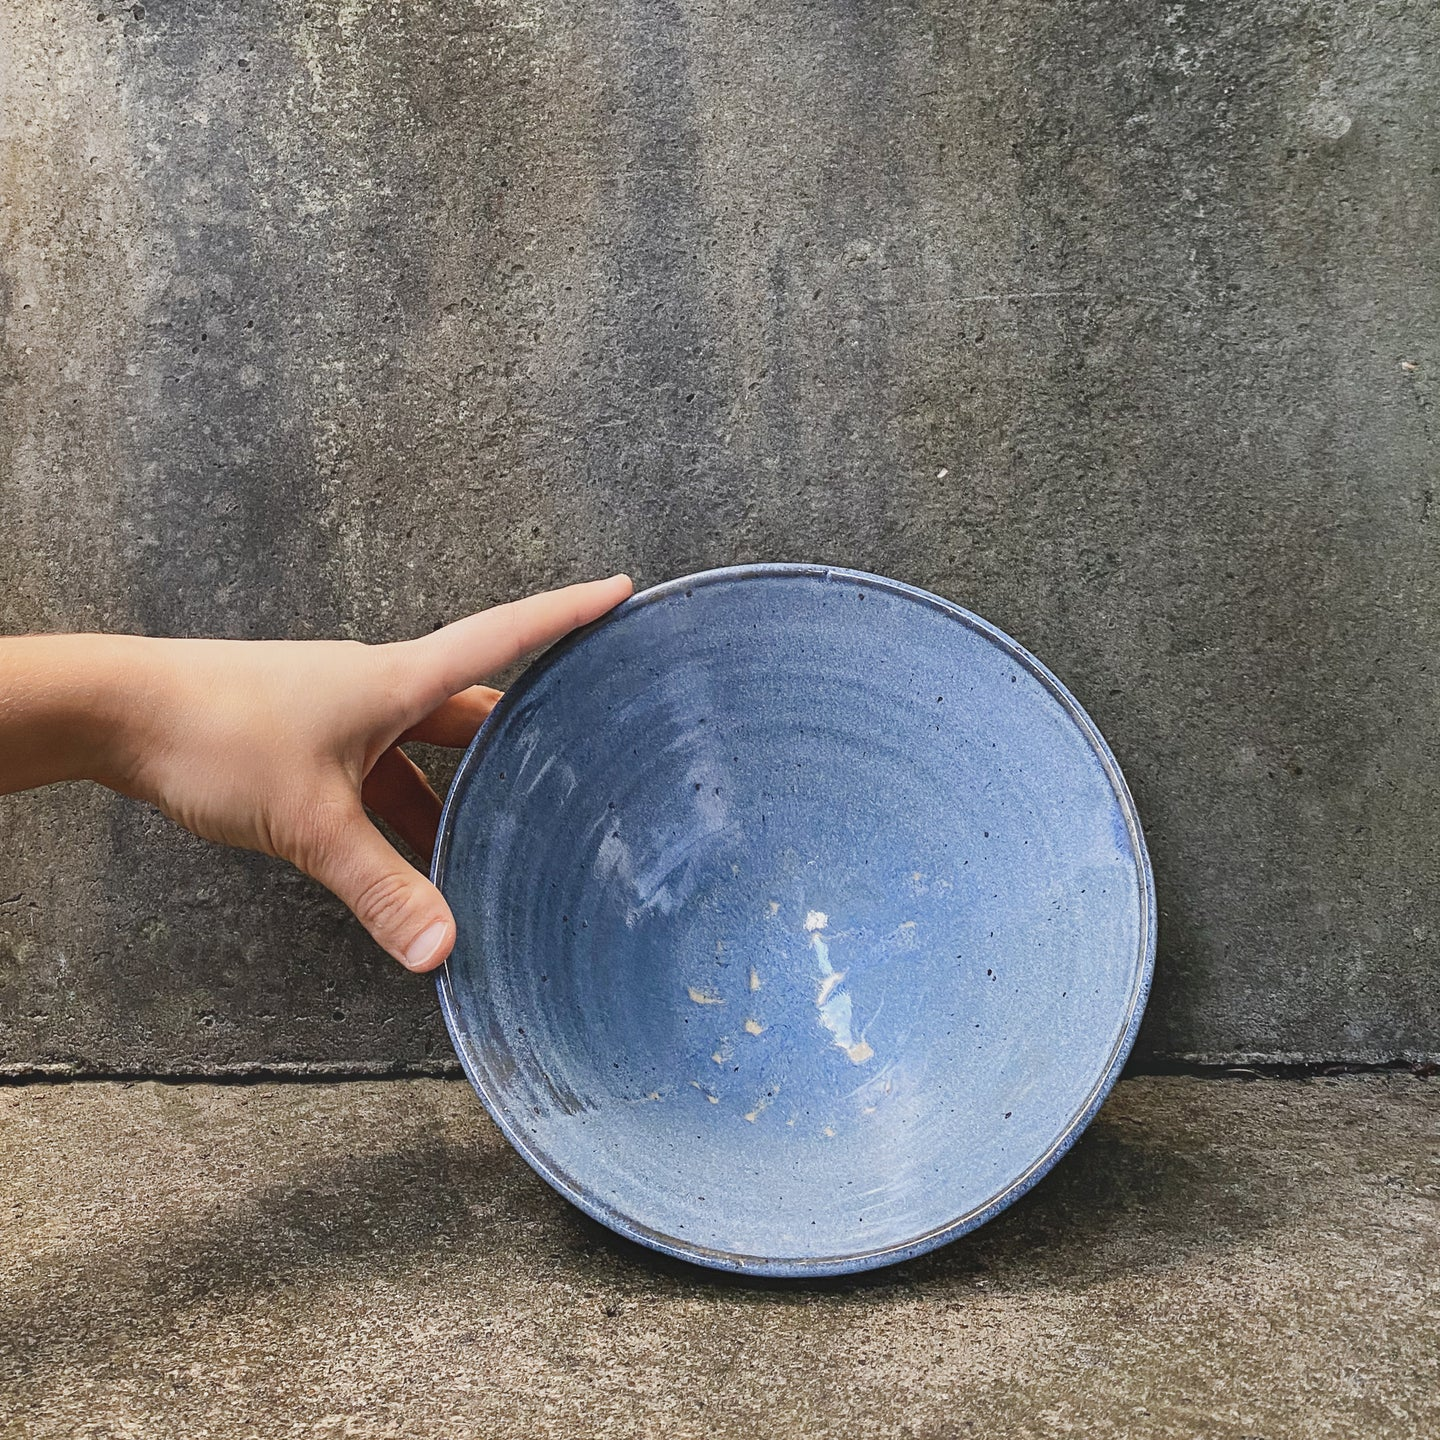 A handmade ceramic bowl, with a single hand holding the piece up against a concrete wall. Made from white Australian stoneware clay with a sky blue glaze on the inside and a blue and brown glaze outside.